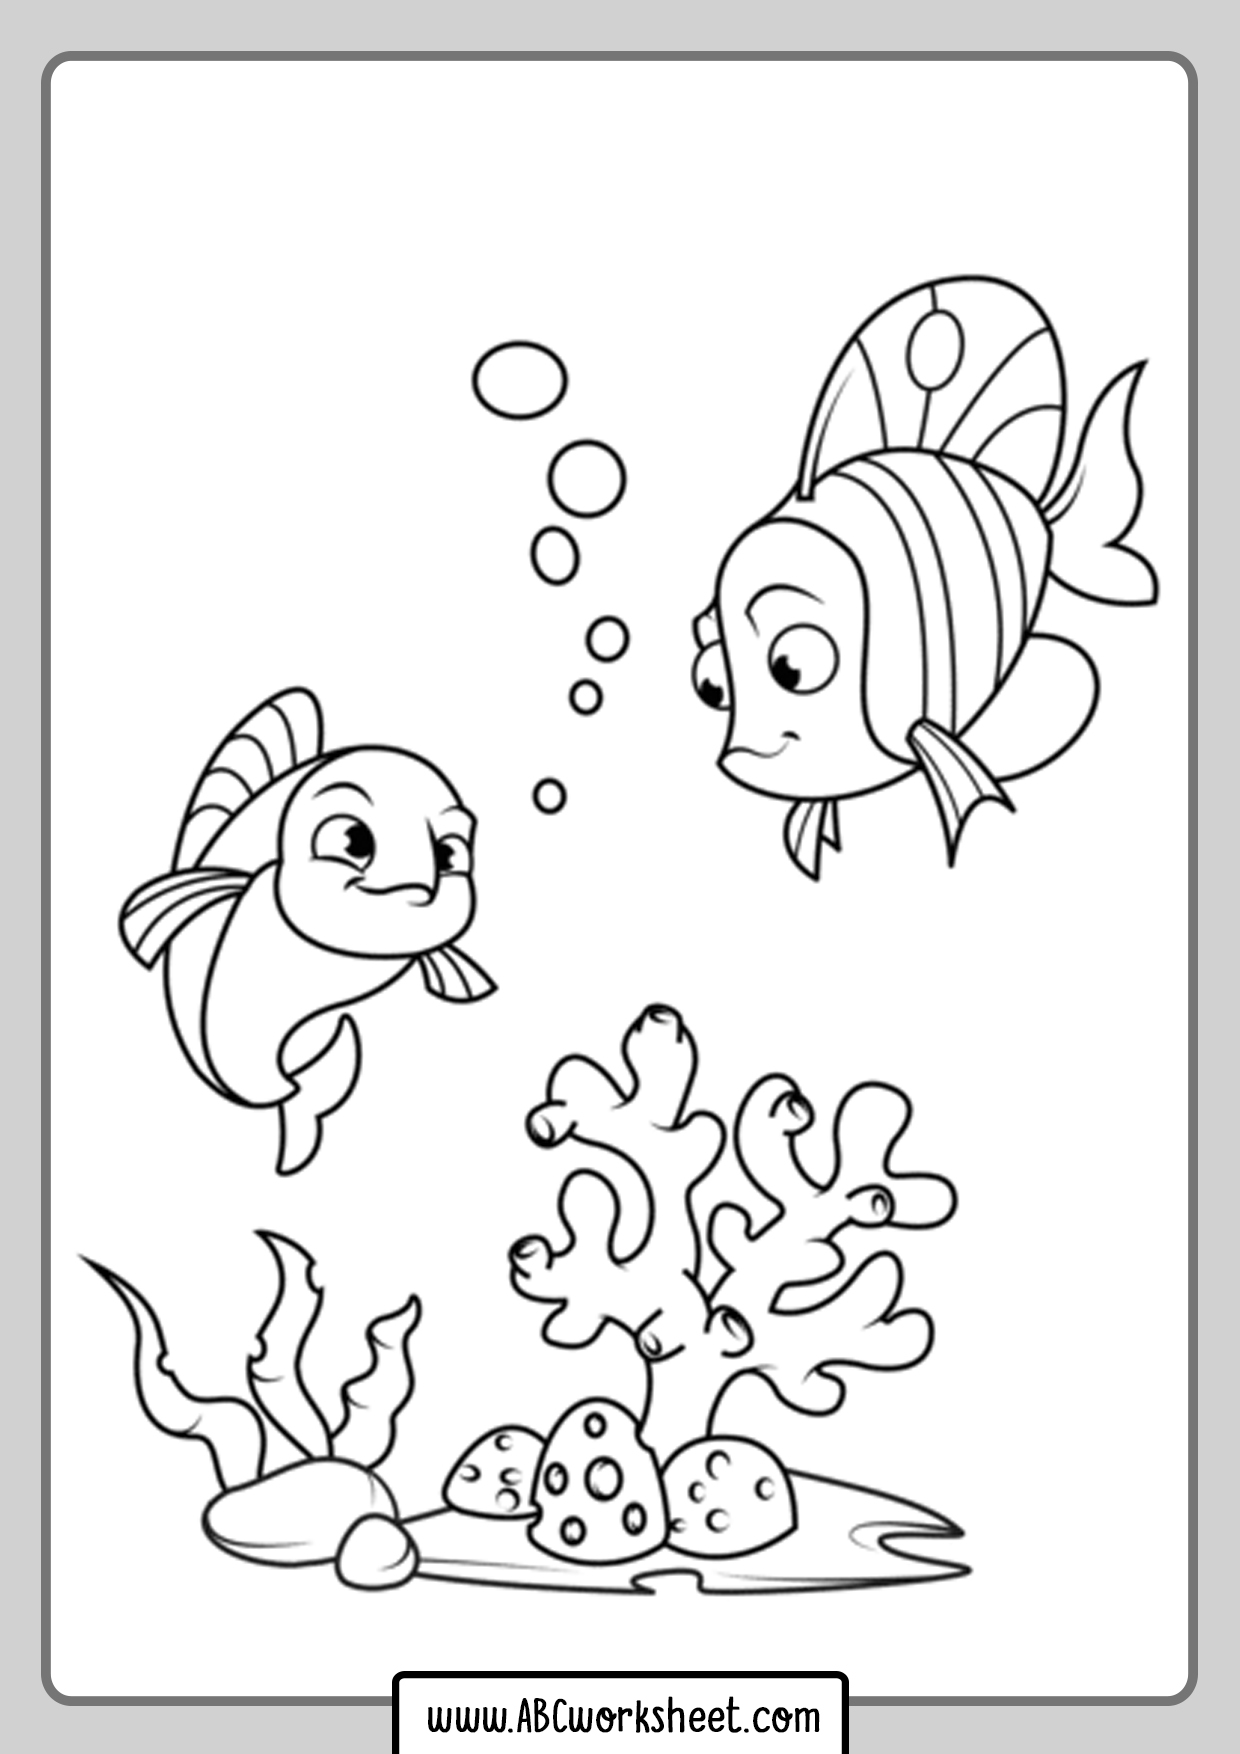 Printable Fish Picture For Coloring